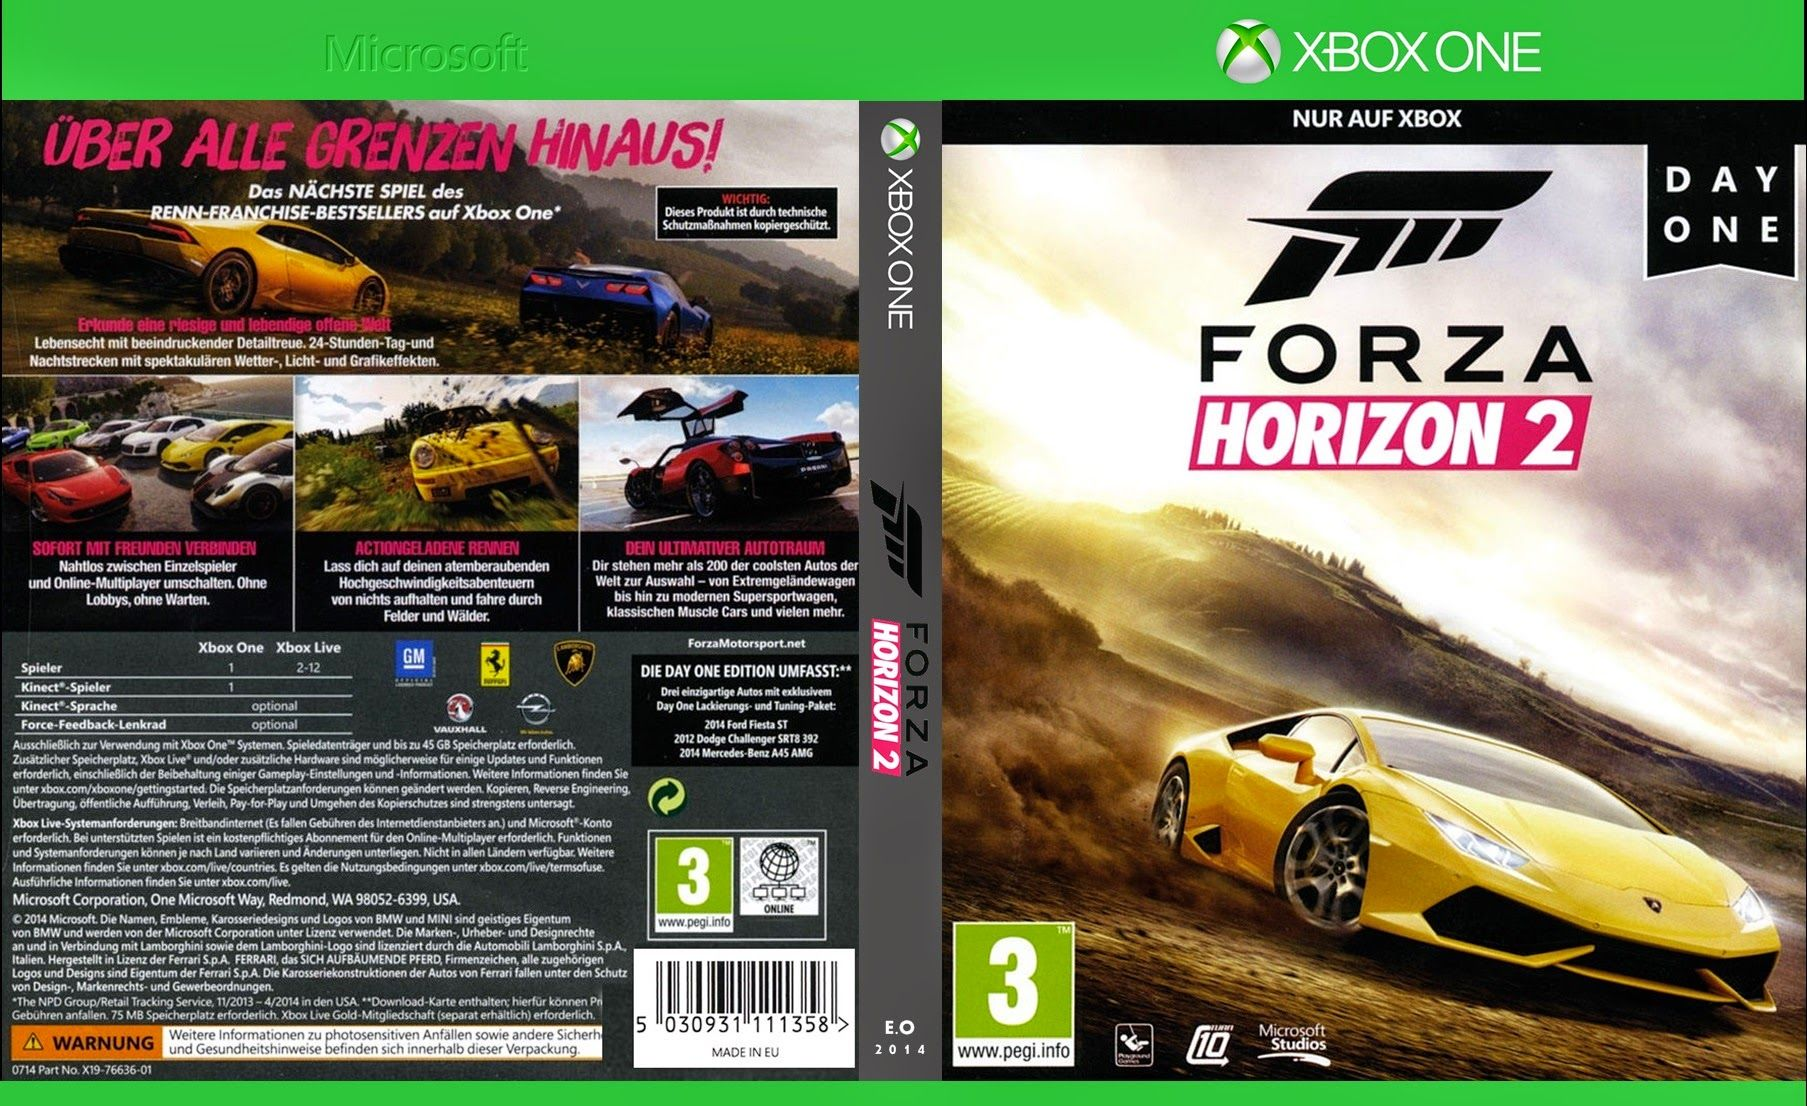 forza horizon xbox jpeg image 1807 1106 pixels. Black Bedroom Furniture Sets. Home Design Ideas